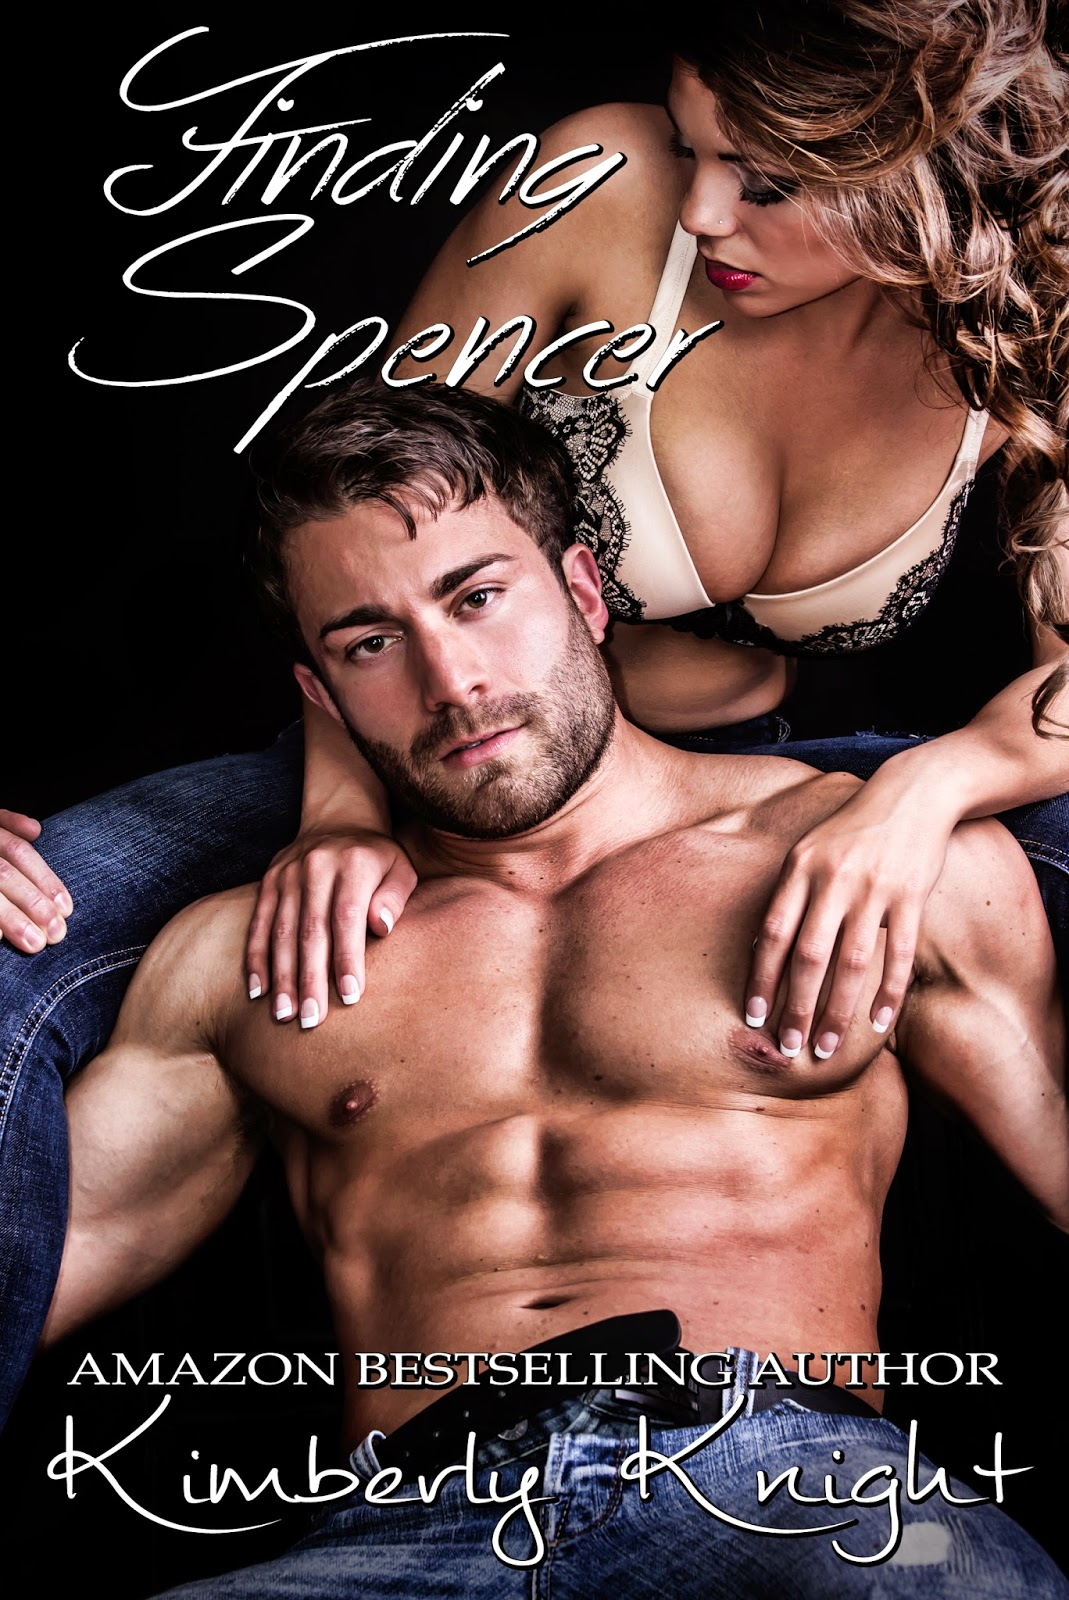 Cover Reveal: Finding Spencer